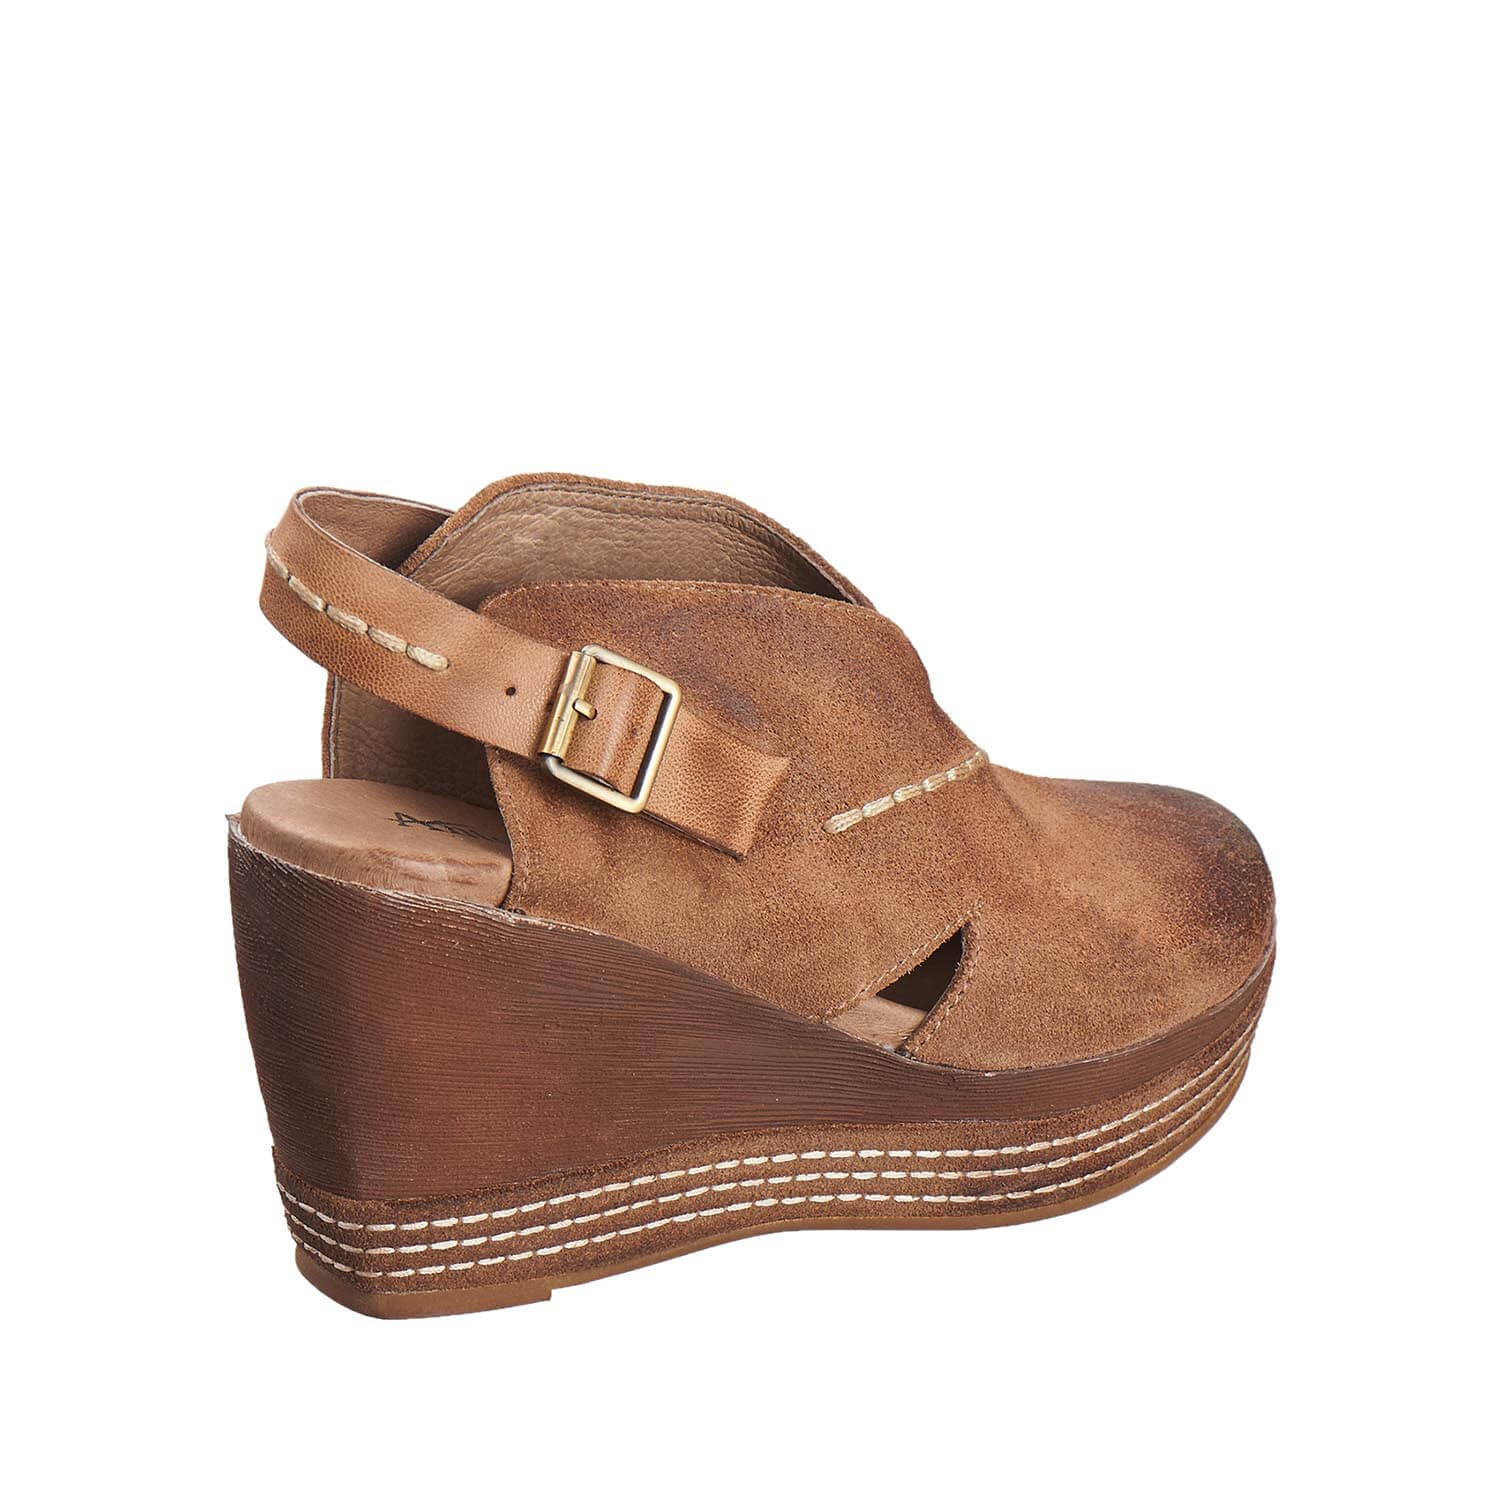 Antelope Women's 836 Taupe Suede Cutout Sling Wedge 38 by Antelope (Image #5)